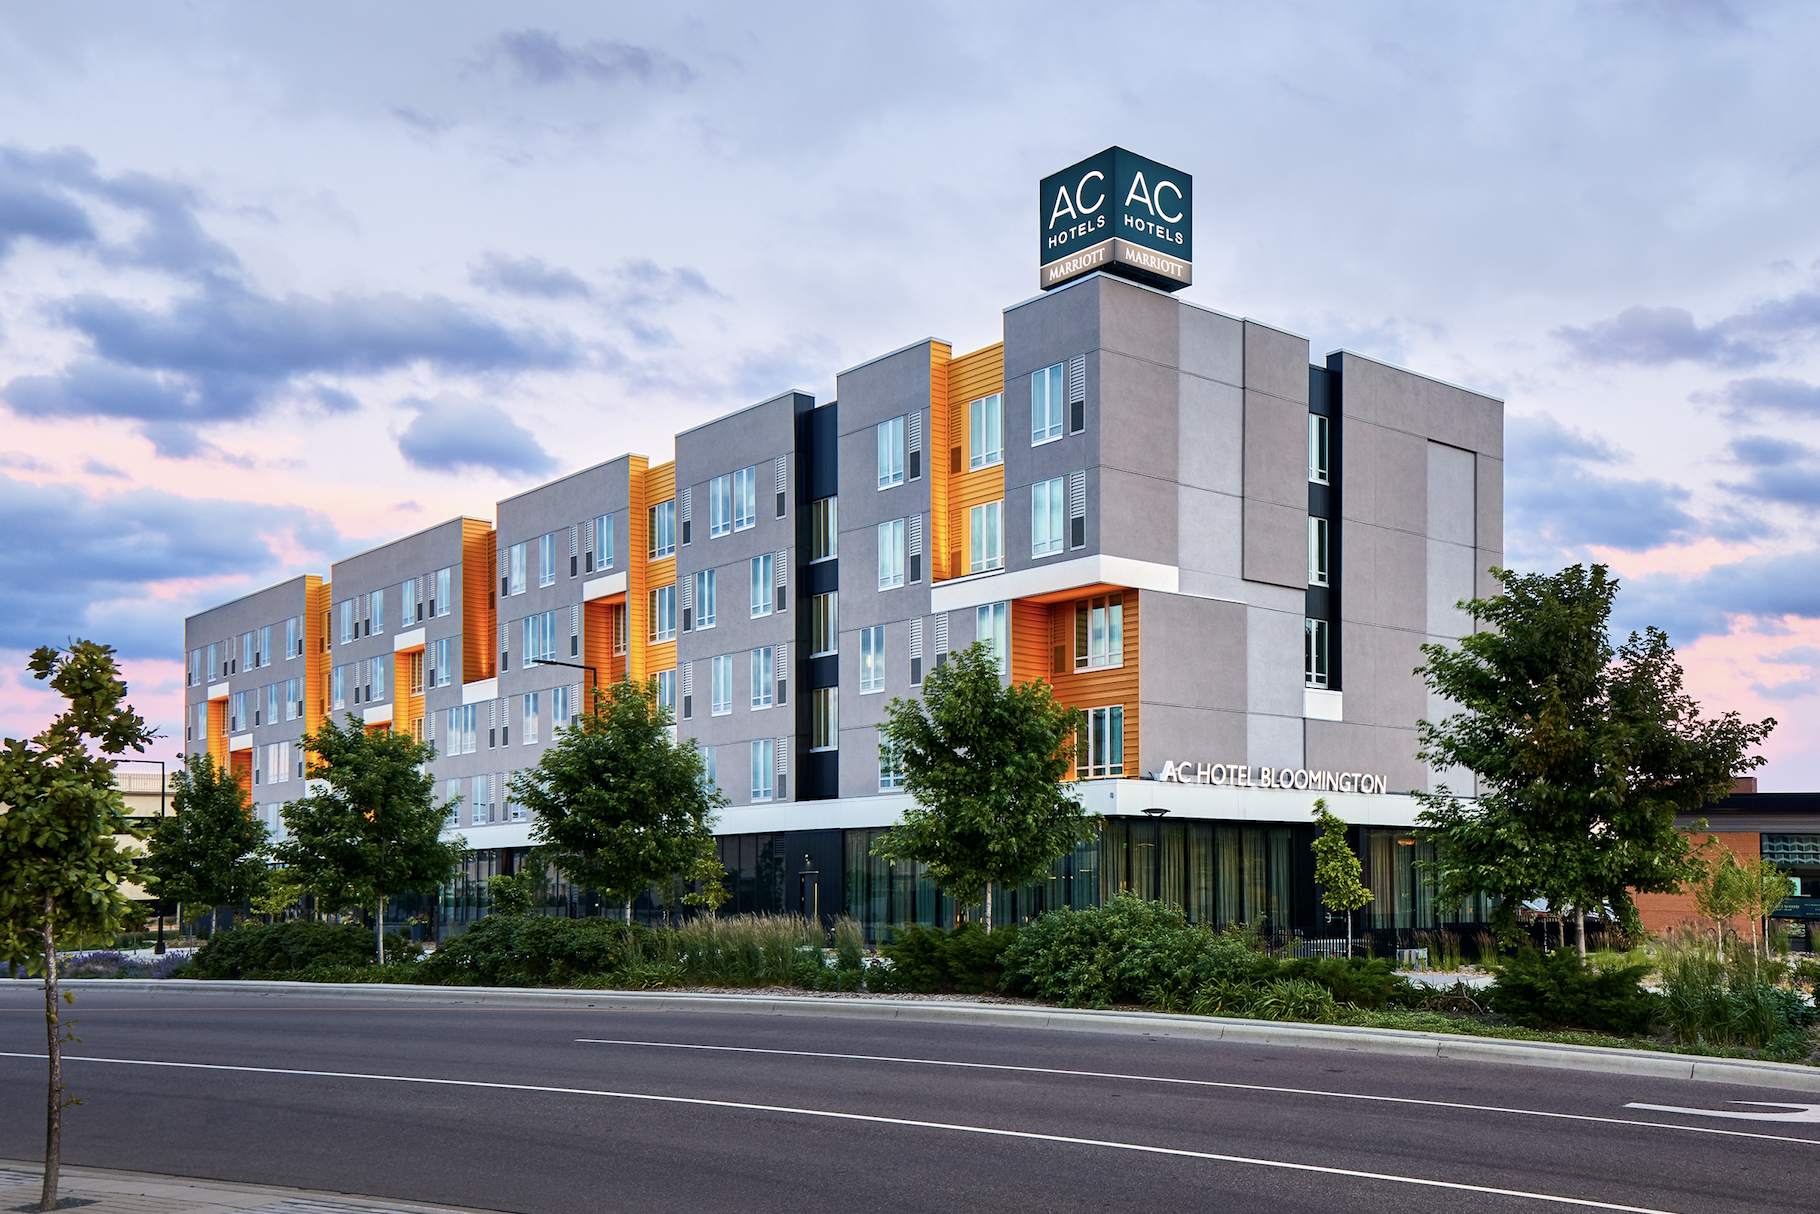 This Image Shows An Ac Hotel By Marriott In Bloomington Minn Jacksonville S Planned Is The Design Phase